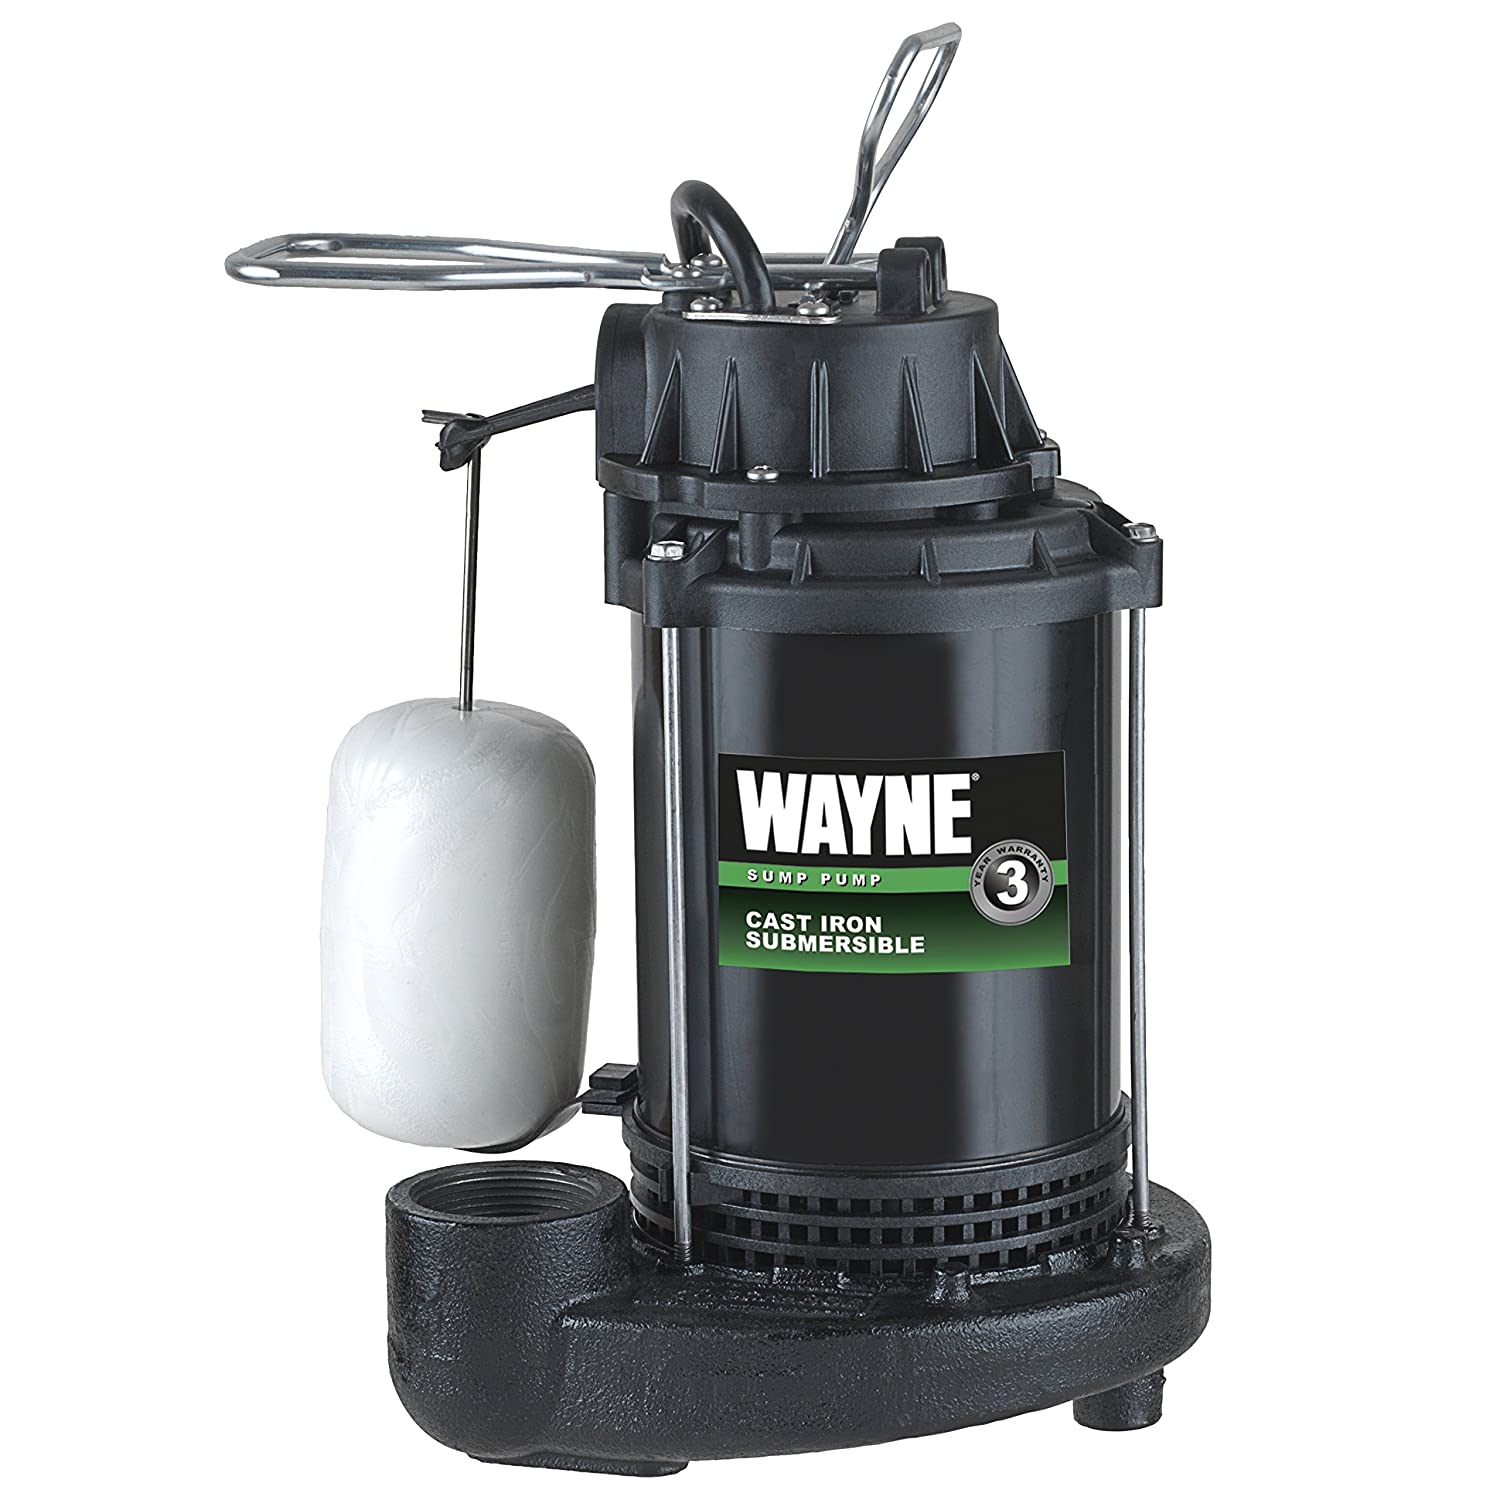 Wayne CDU790 Submersible Sump Pump